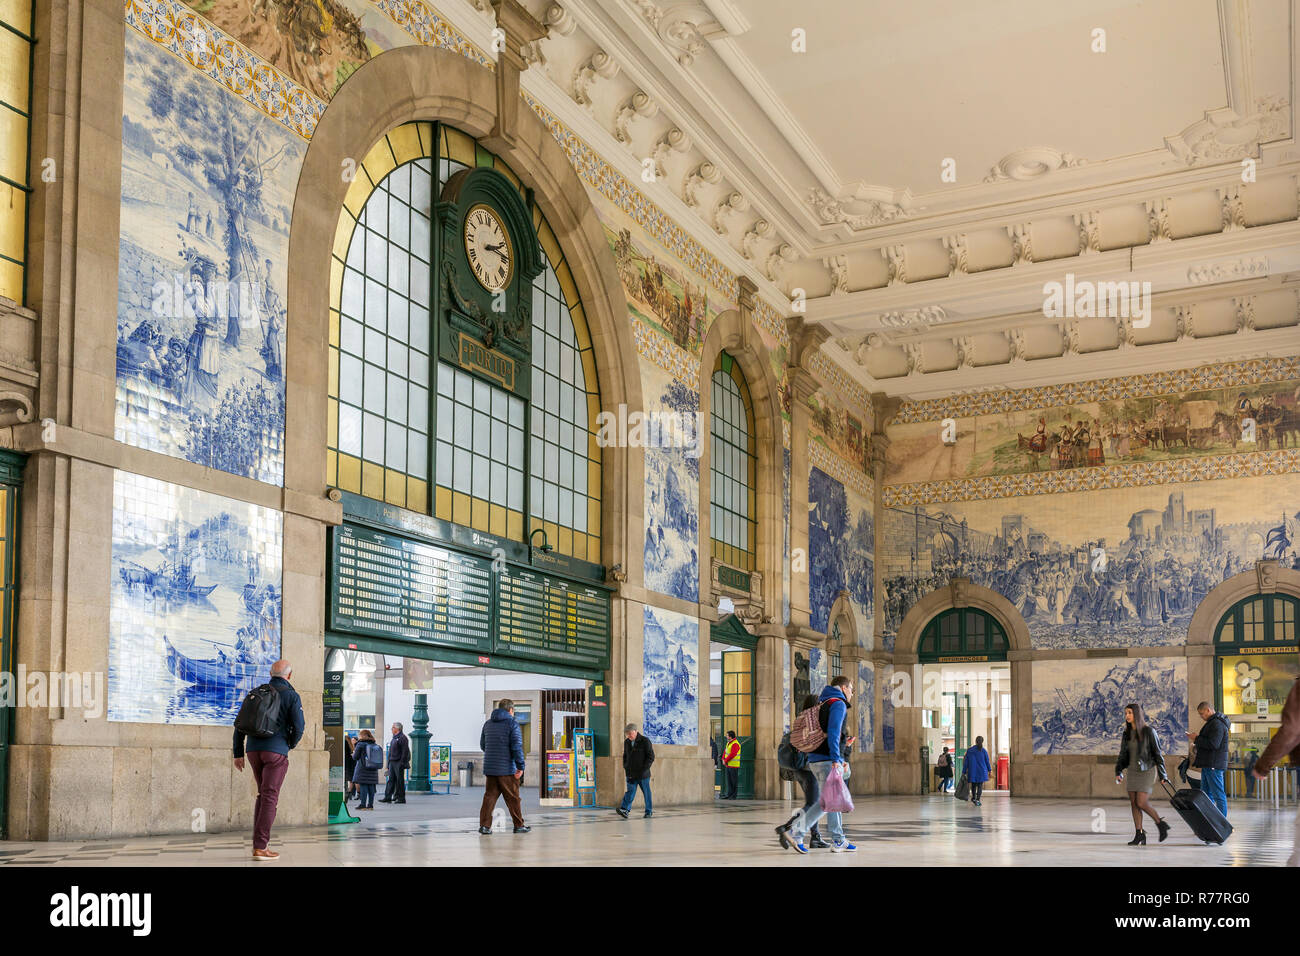 Porto, Portugal - January 12, 2018: People in the vestibule of Sao Bento Railway Station. It is decorated with approximately 20,000 azulejo tiles, dat - Stock Image